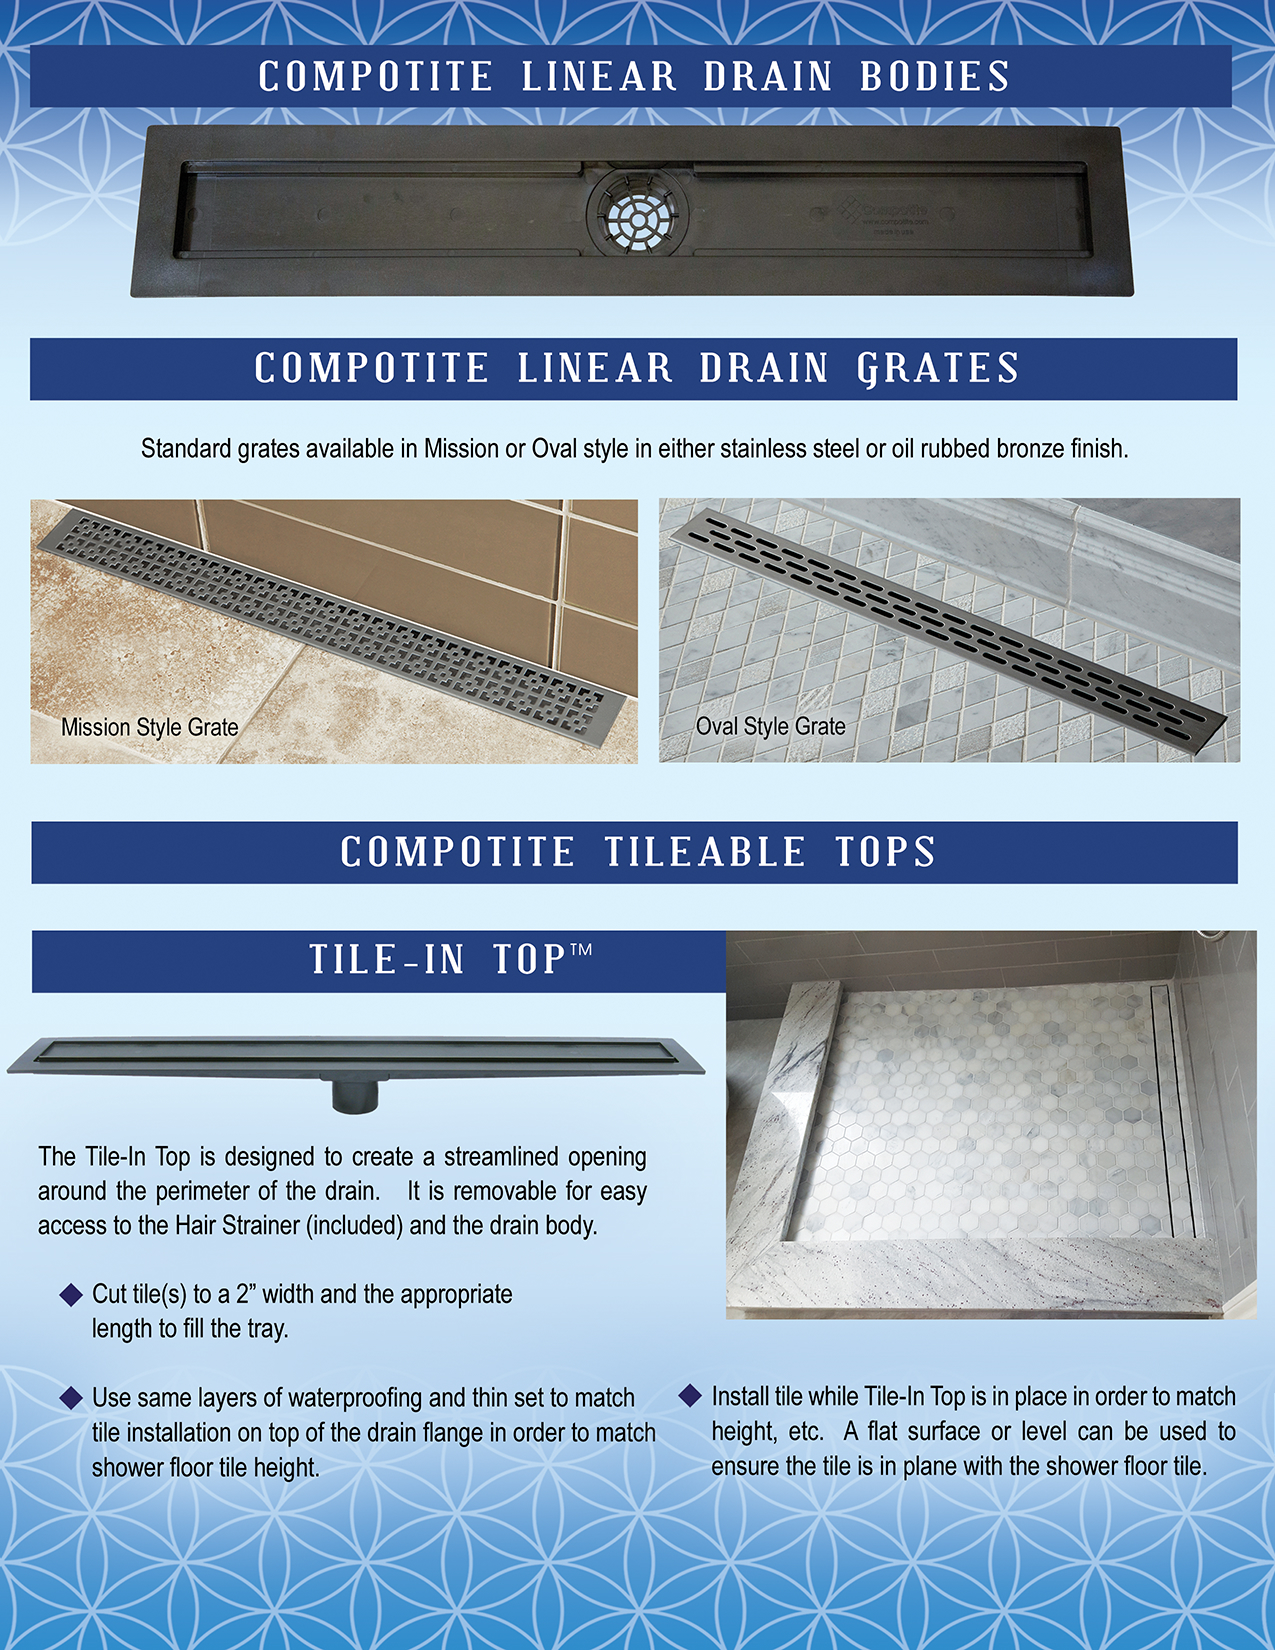 Compotite Linear Drains- ABS Plastic